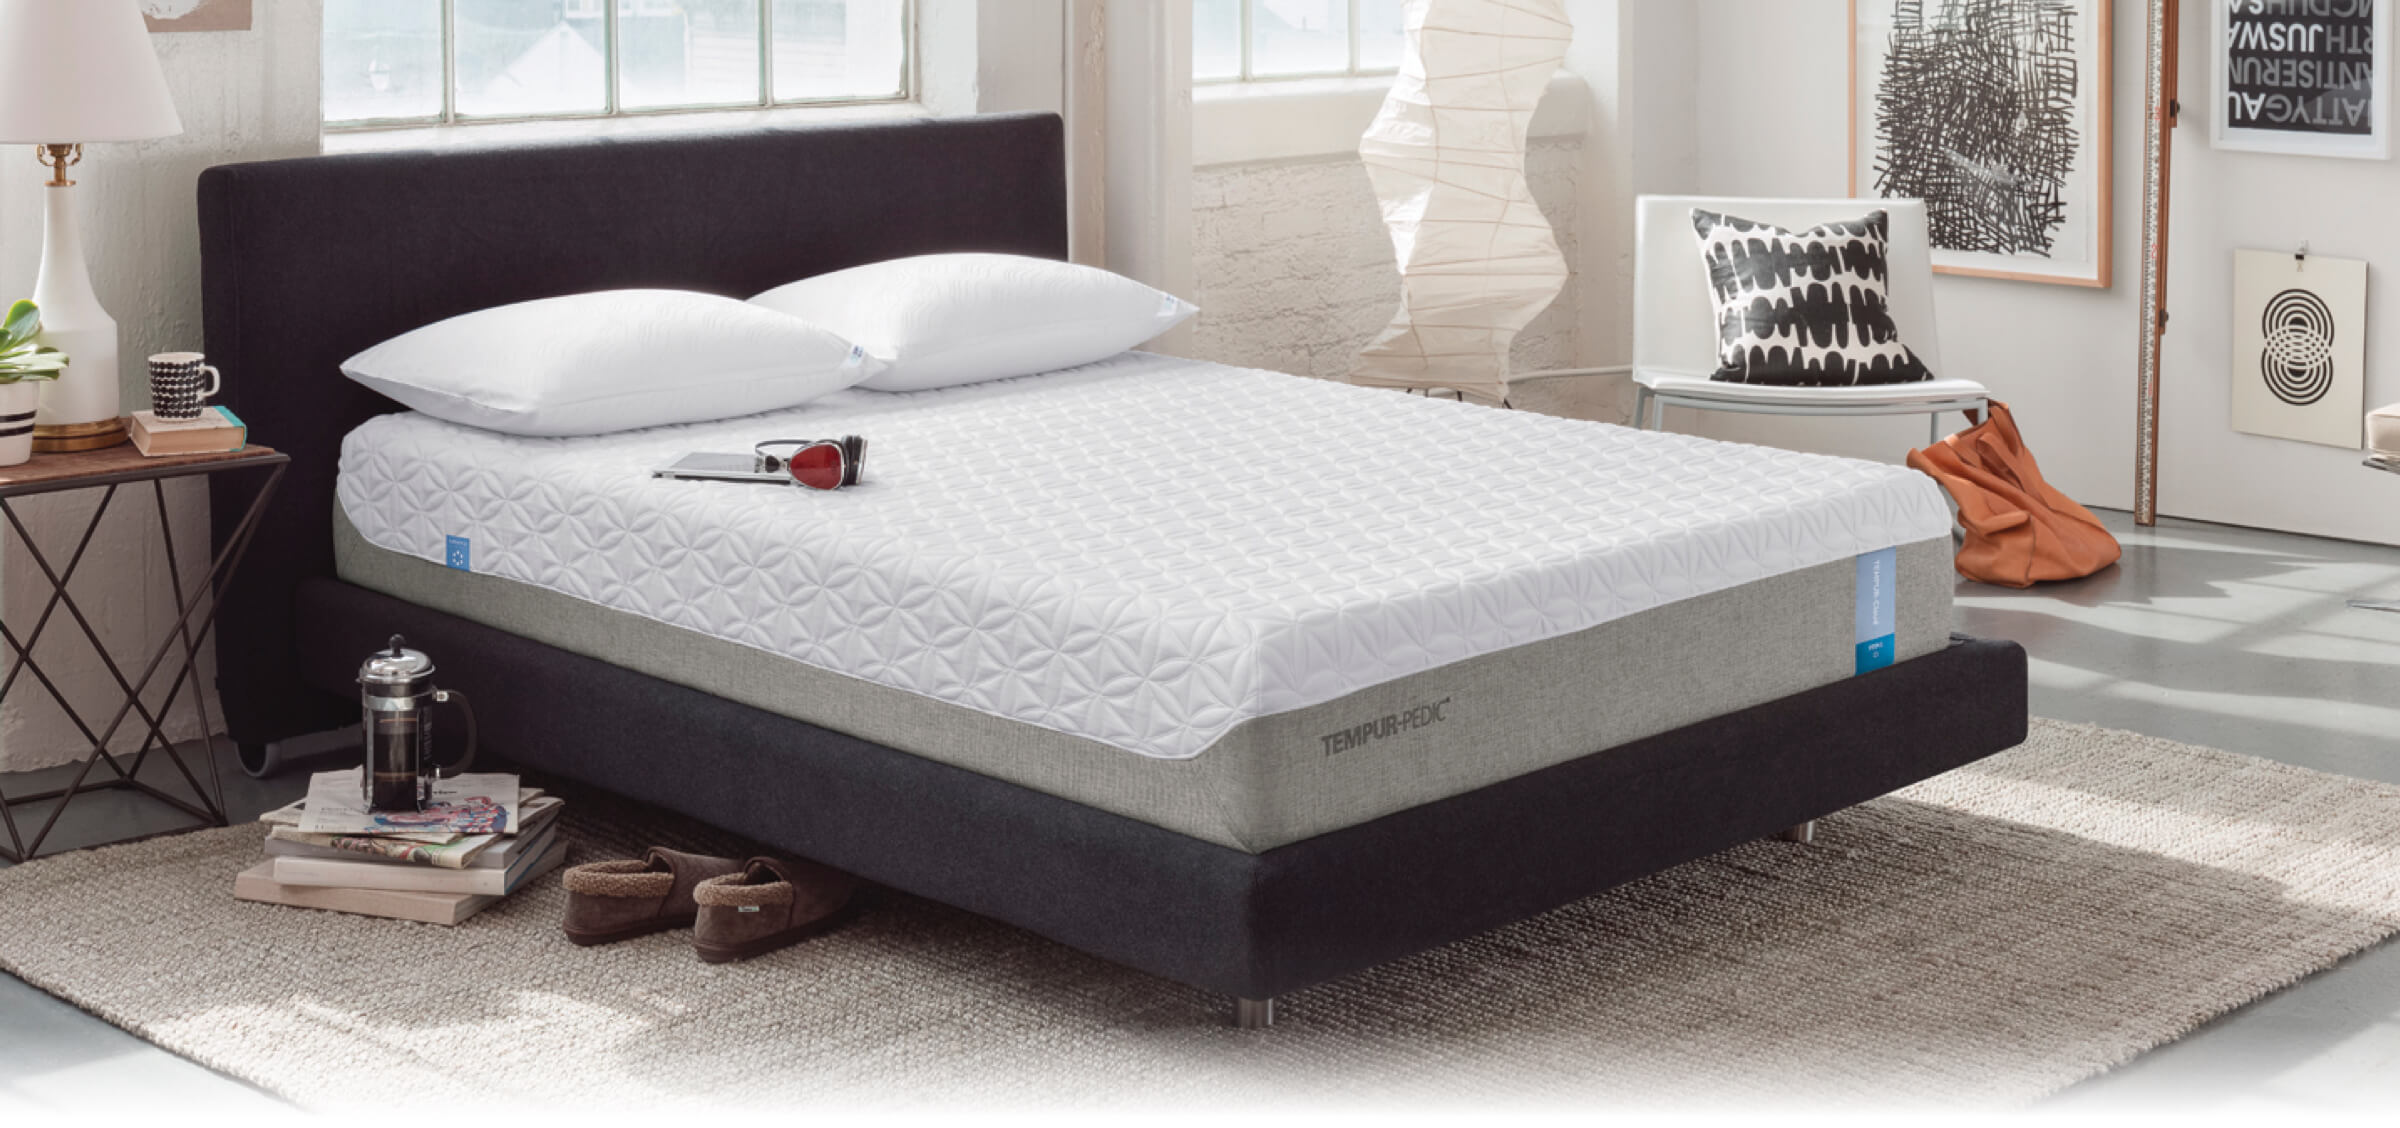 Sleep on the best with Tempur Pedic